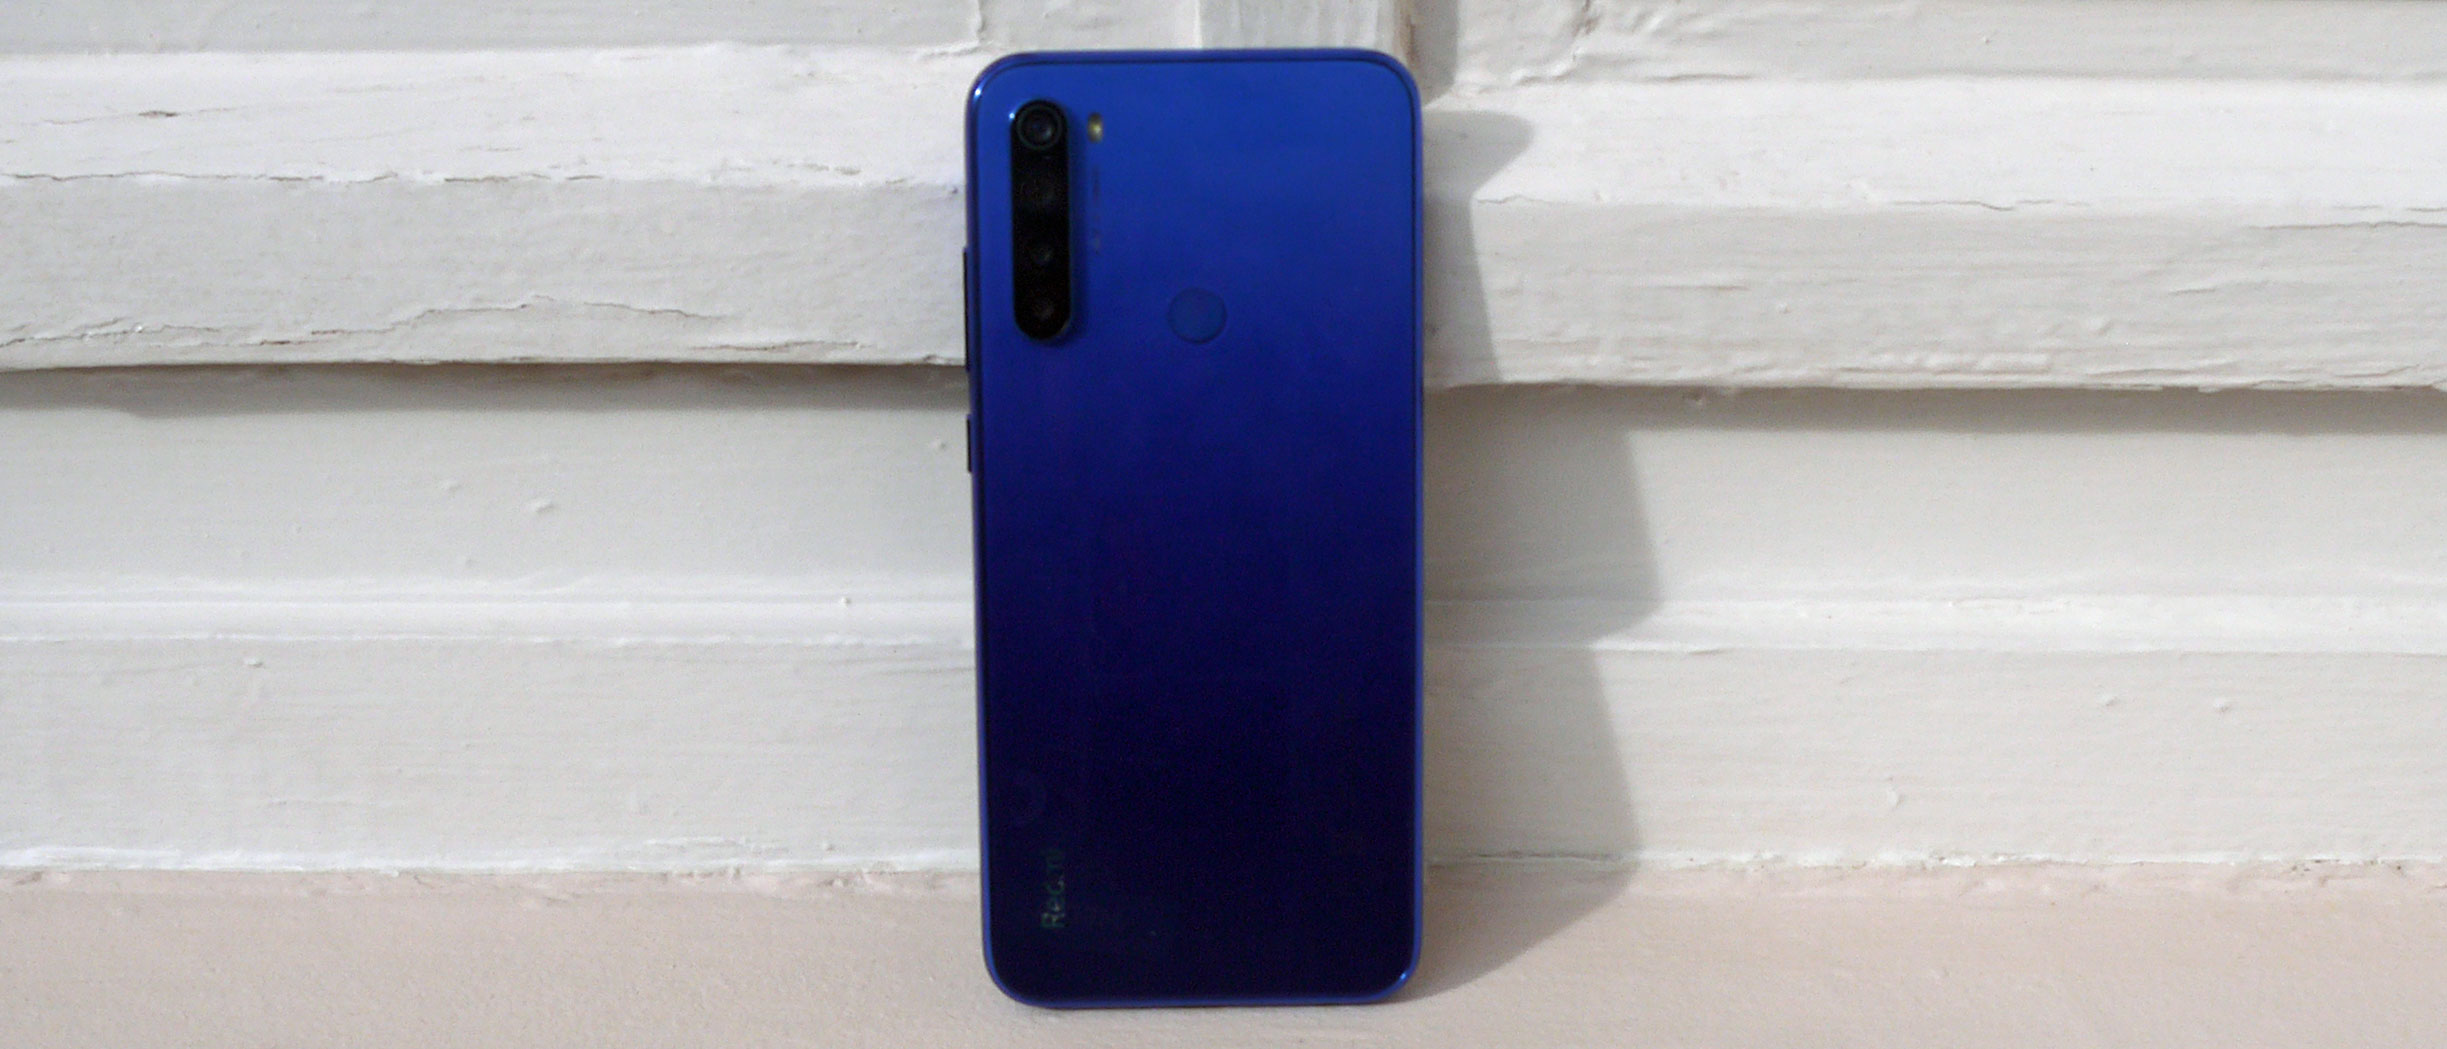 Hands on: Xiaomi Redmi Note 8T review | TechRadar